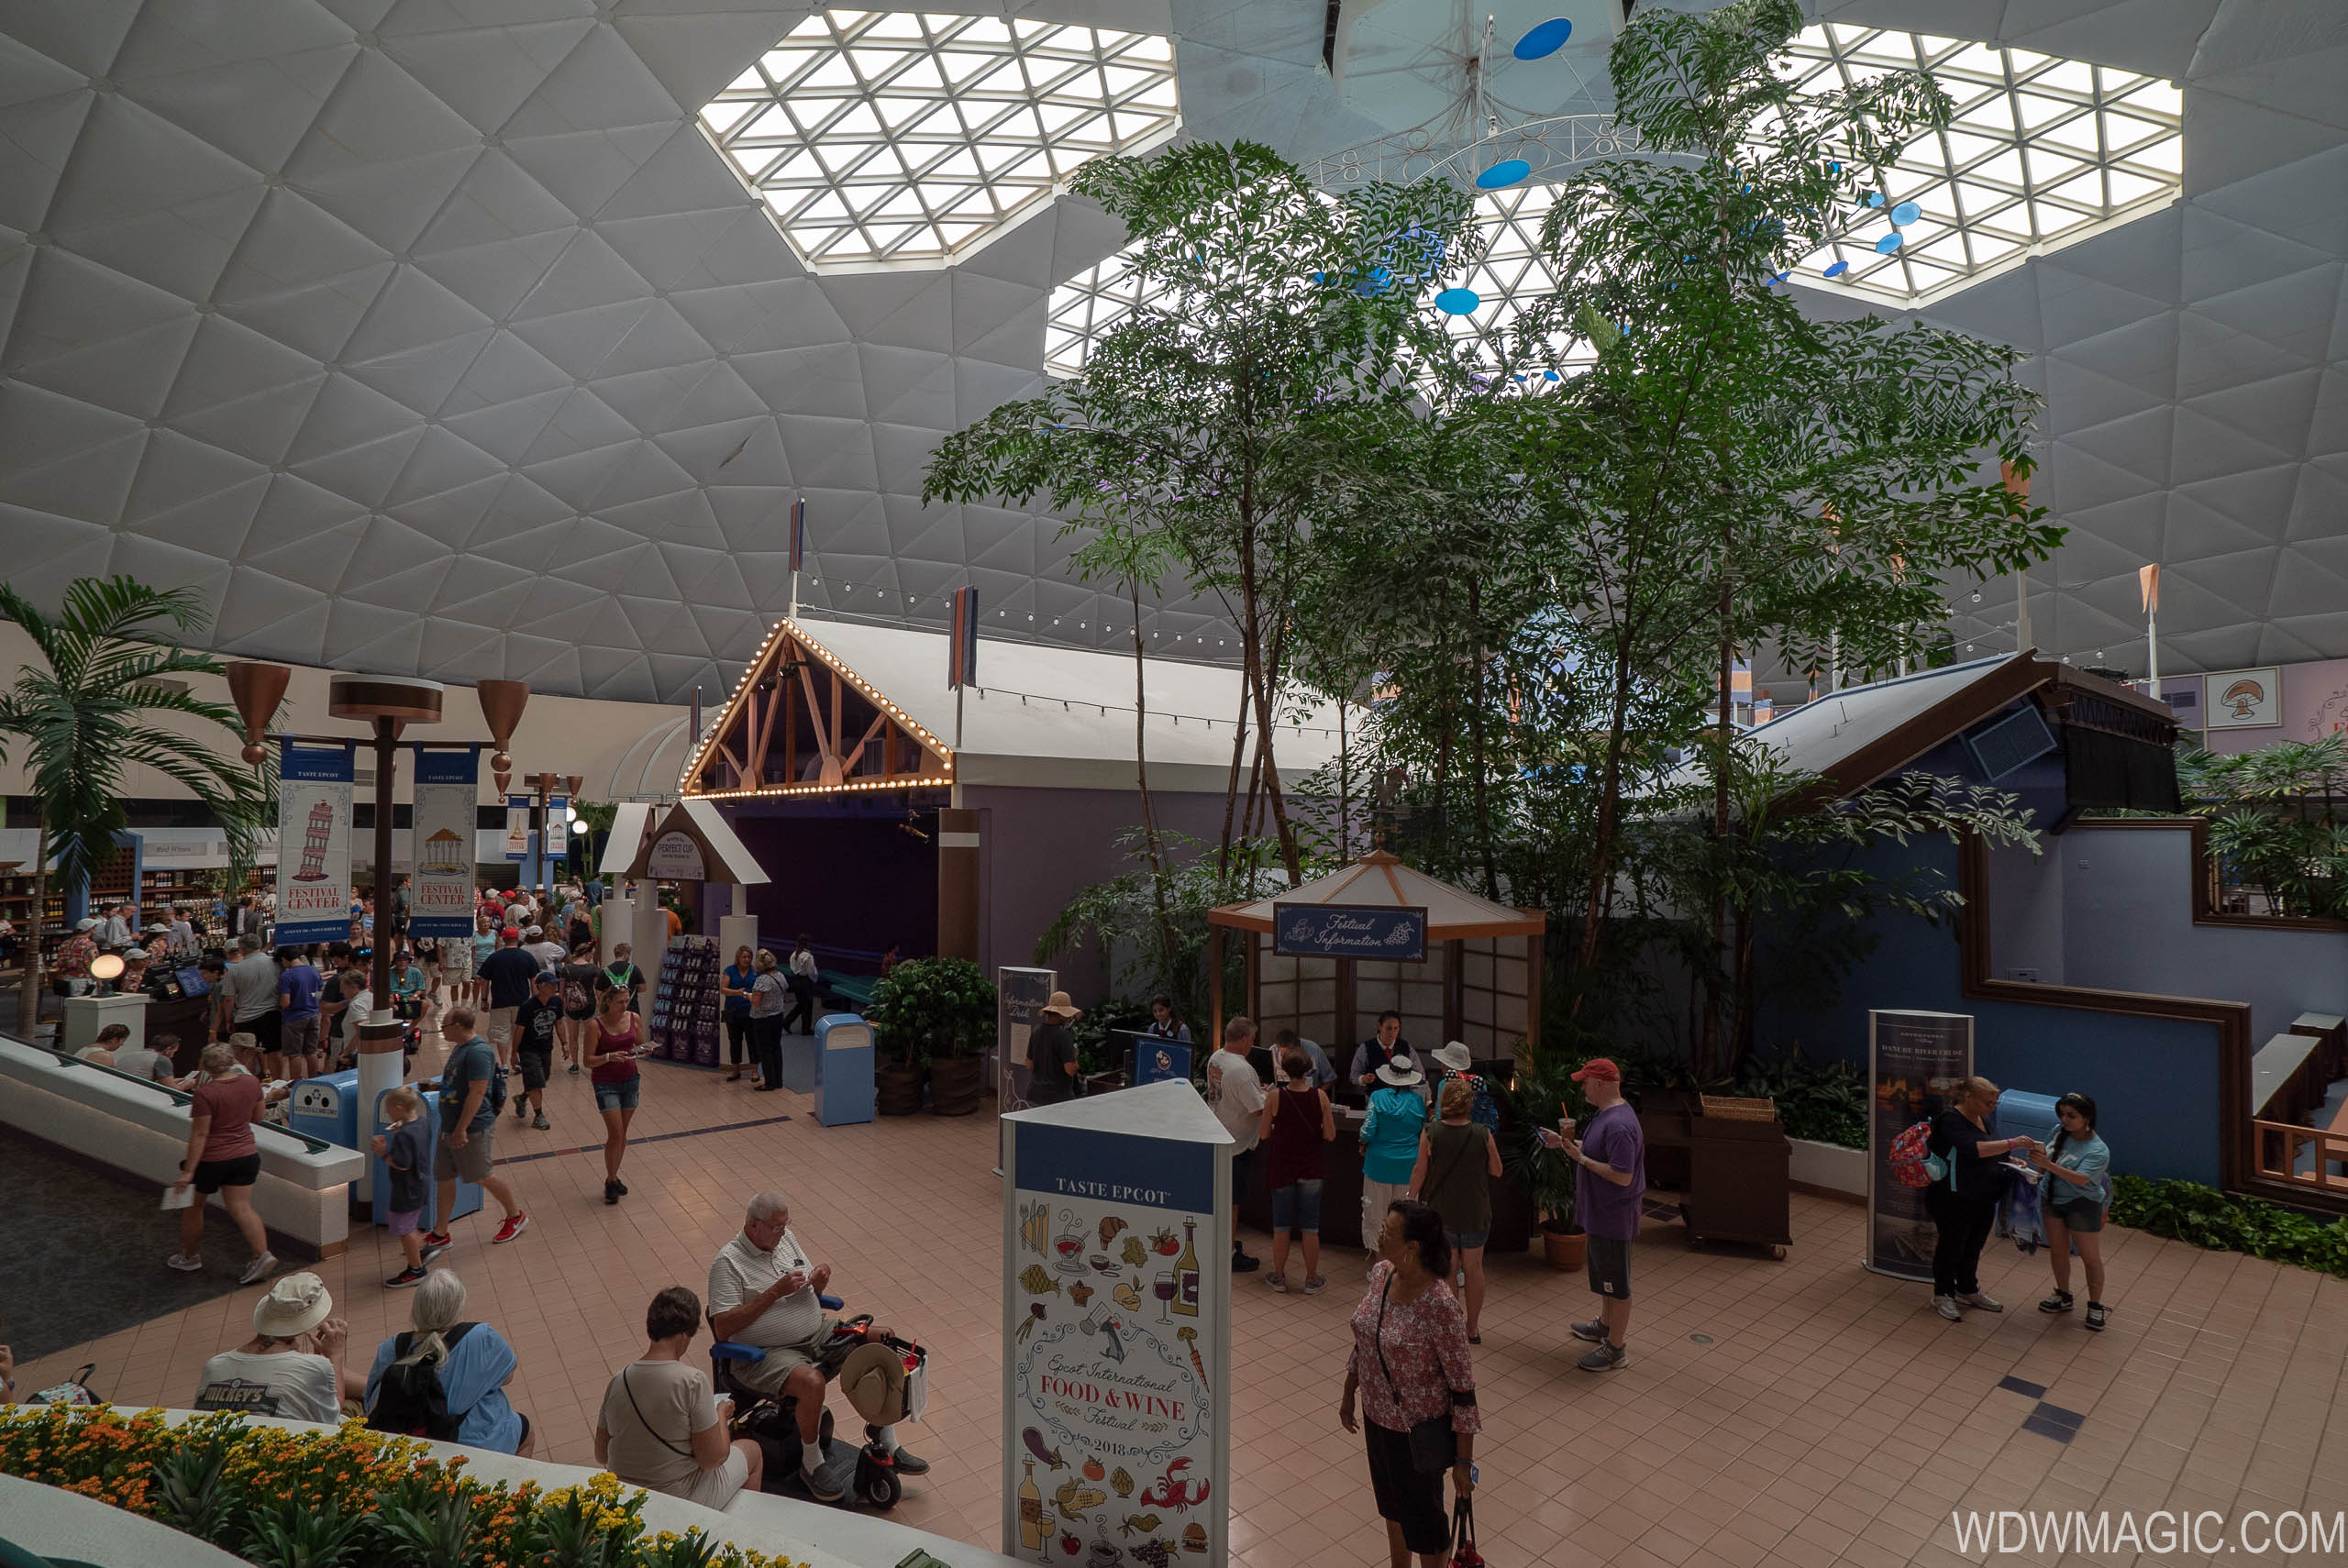 Wonders of Life has most recently been used as event space for Epcot's Festivals